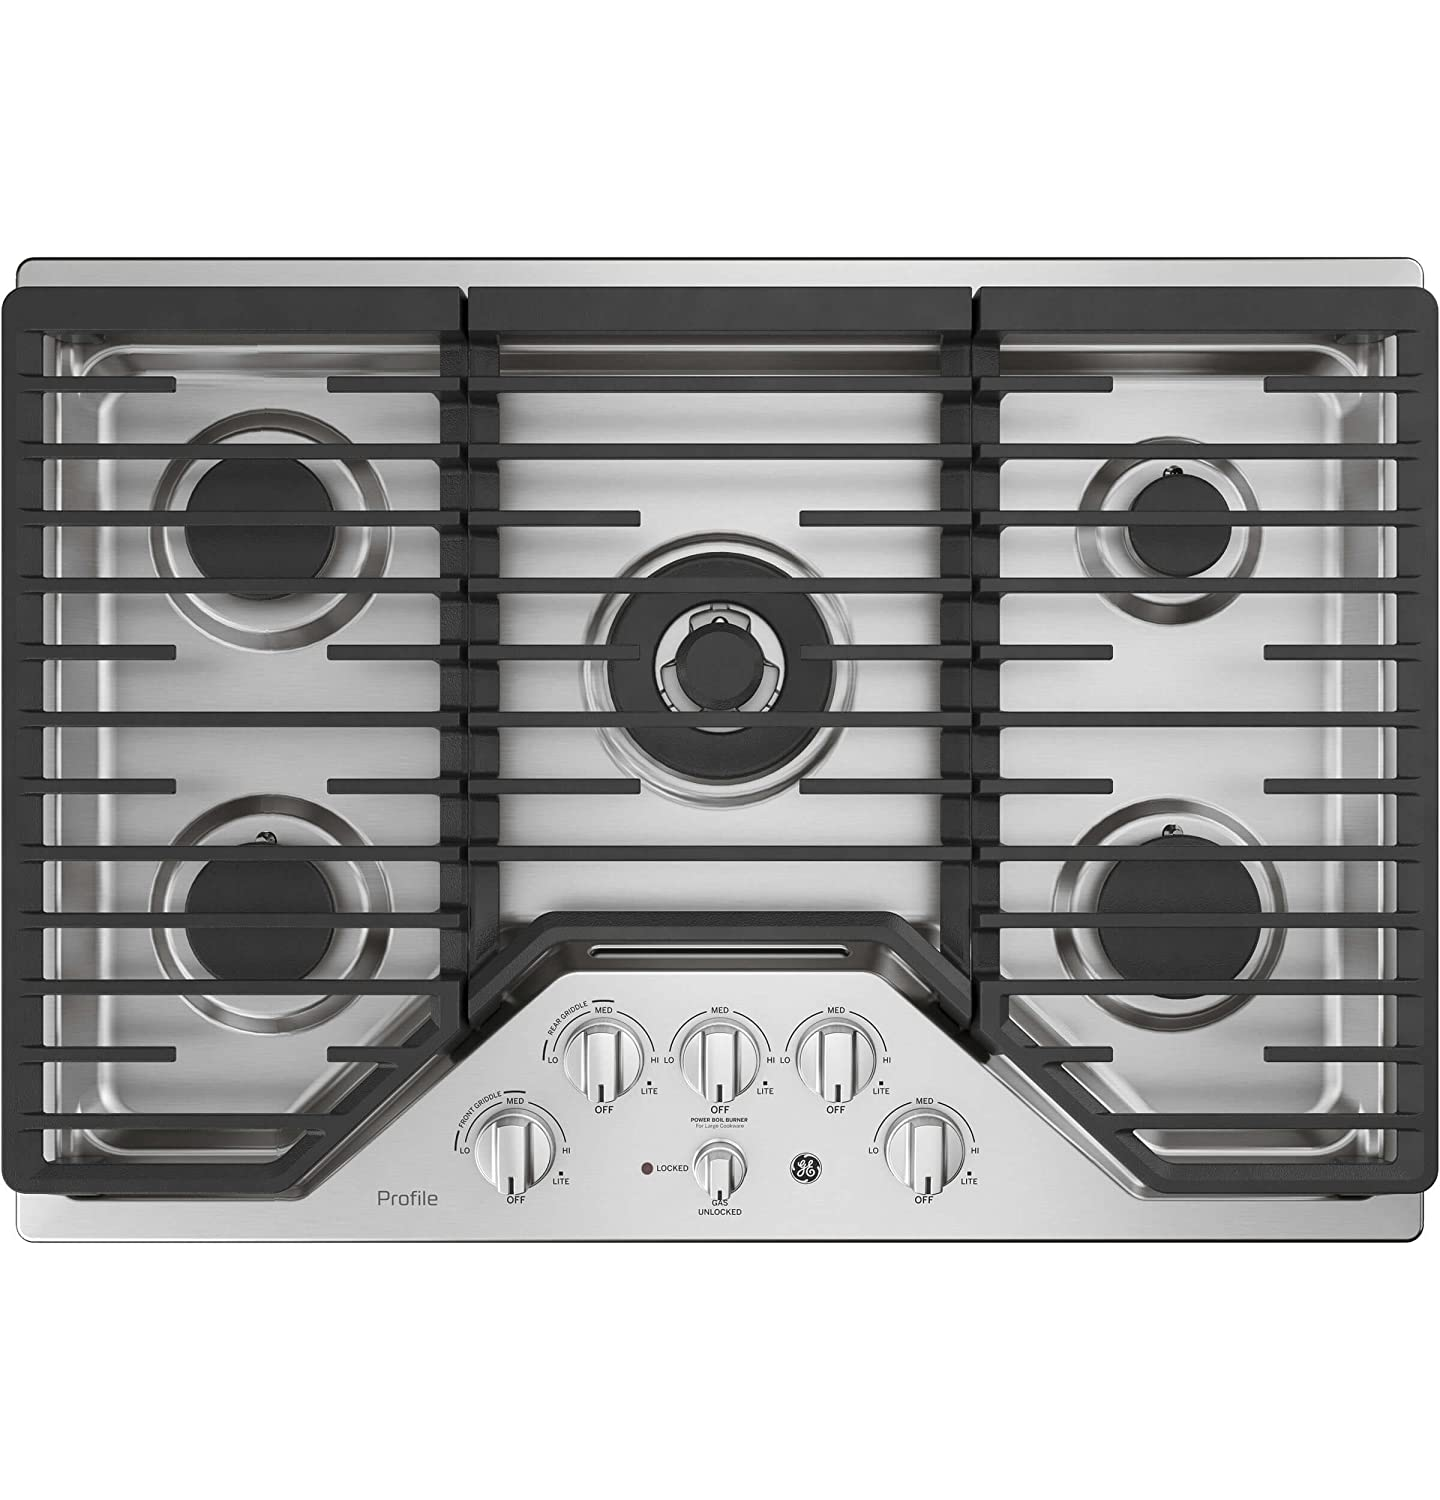 GE Profile PGP9030SLSS 30 Inch Natural Gas Sealed Burner Style Cooktop with 5 Burners in Stainless Steel G.E. Profile